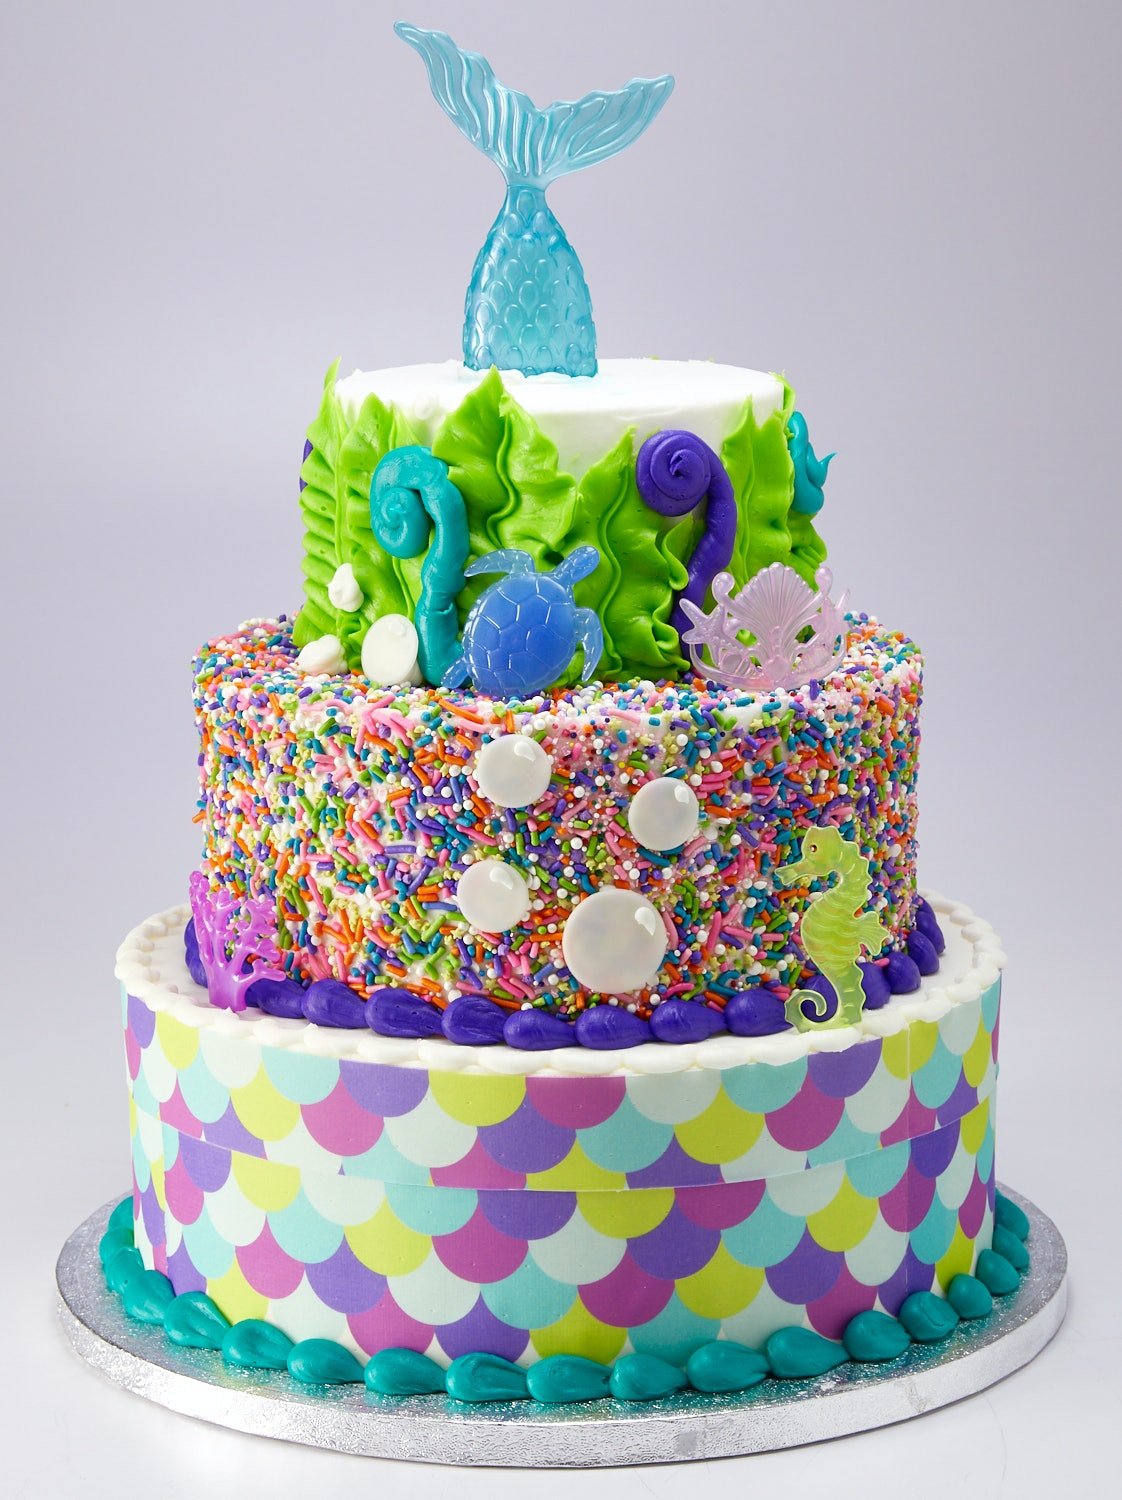 This 3 Tier Mermaid Cake From Sams Club Feeds 66 People And Costs